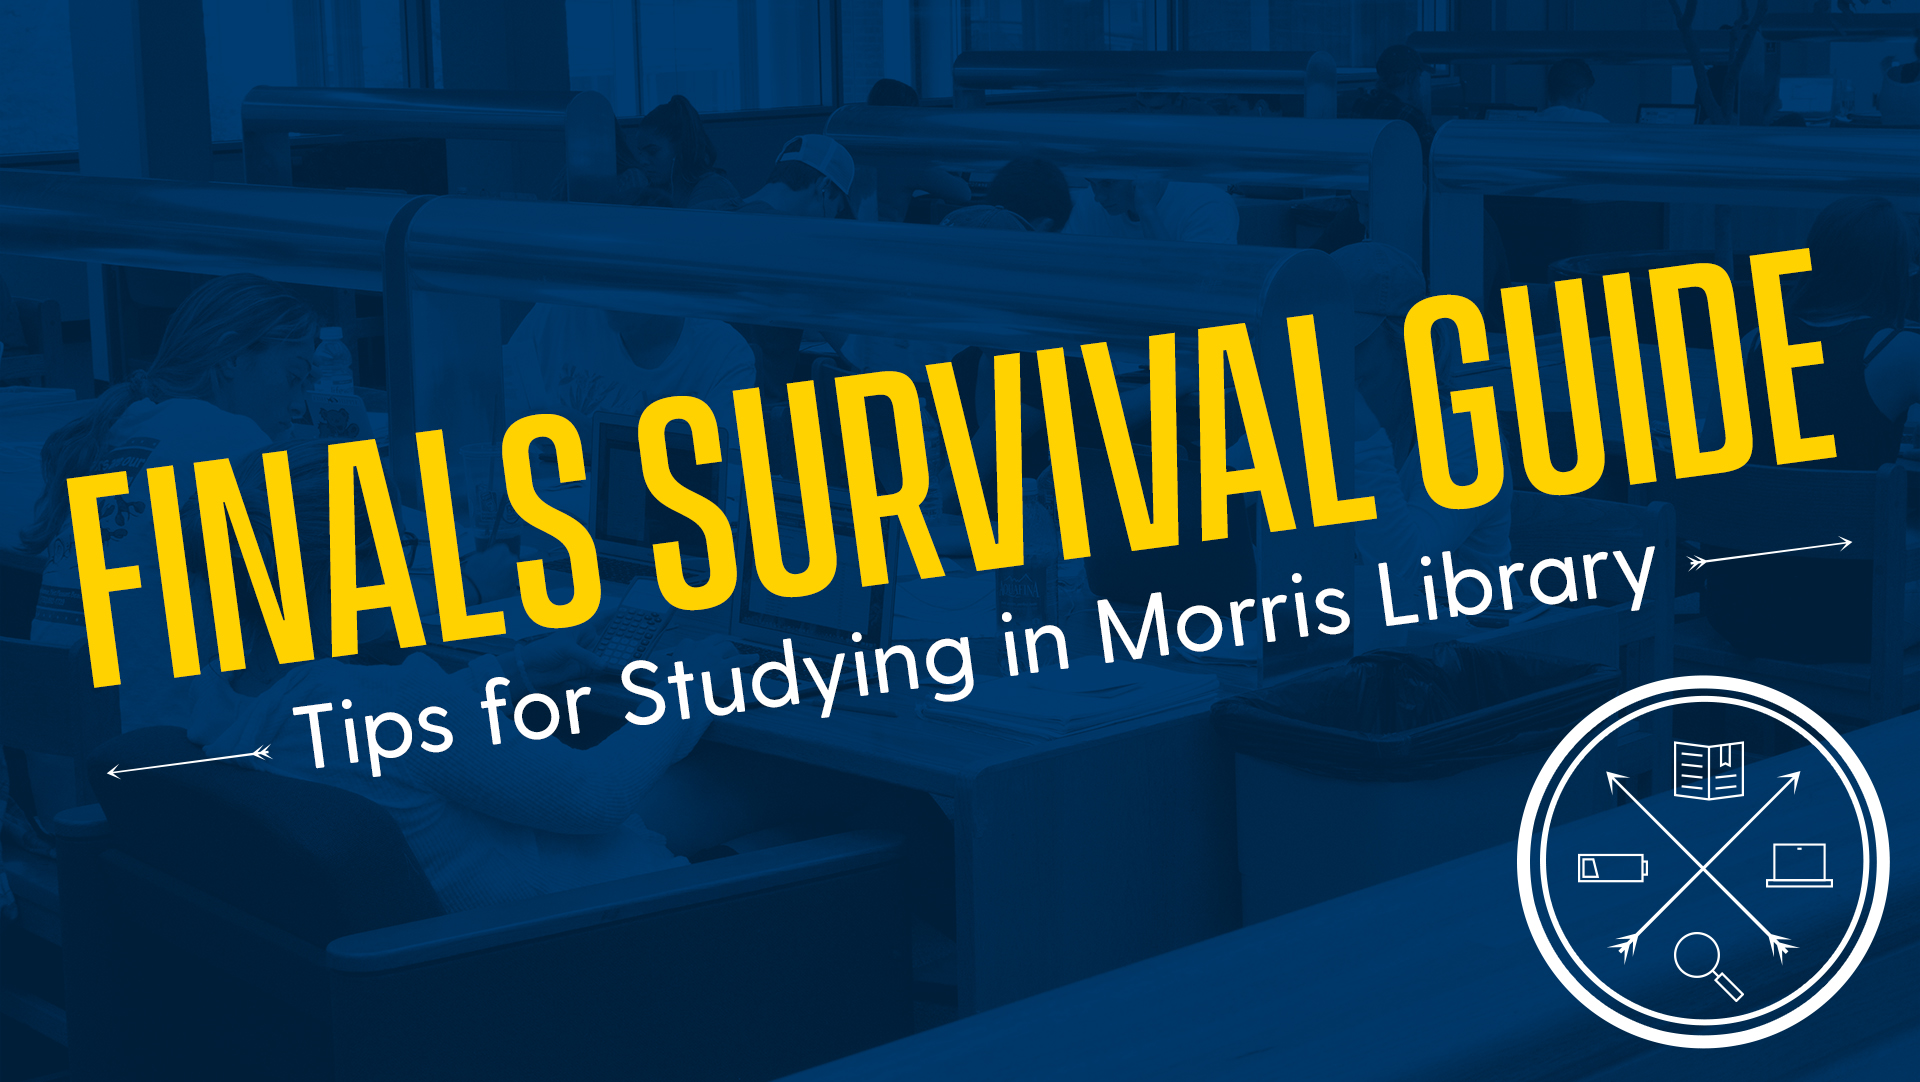 Finals Survival Guide Promo Image